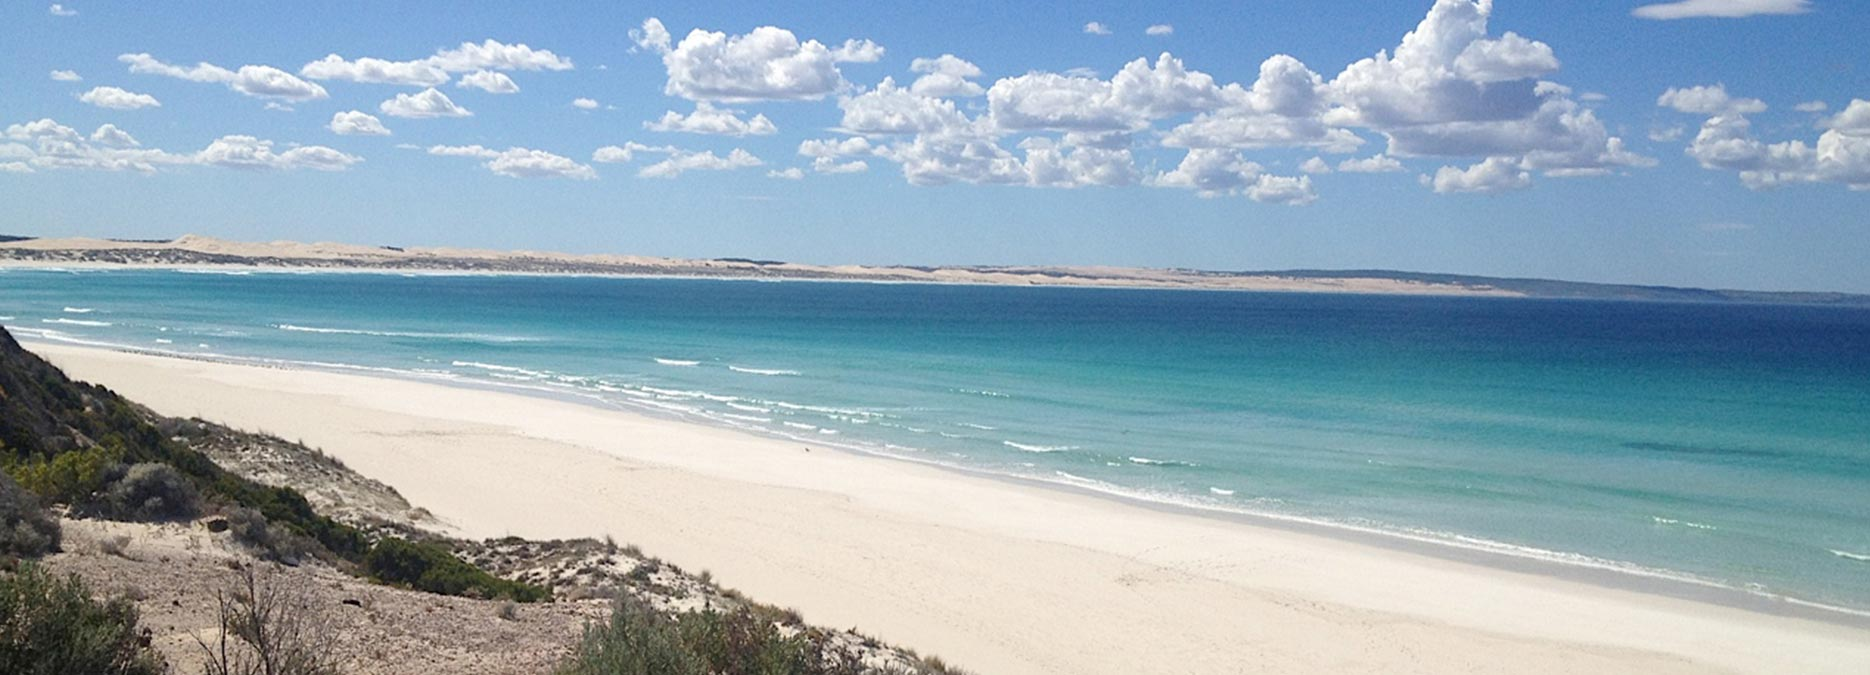 EP Bus Charters Eyre Peninsula Bus Charter Hire Tours Beach